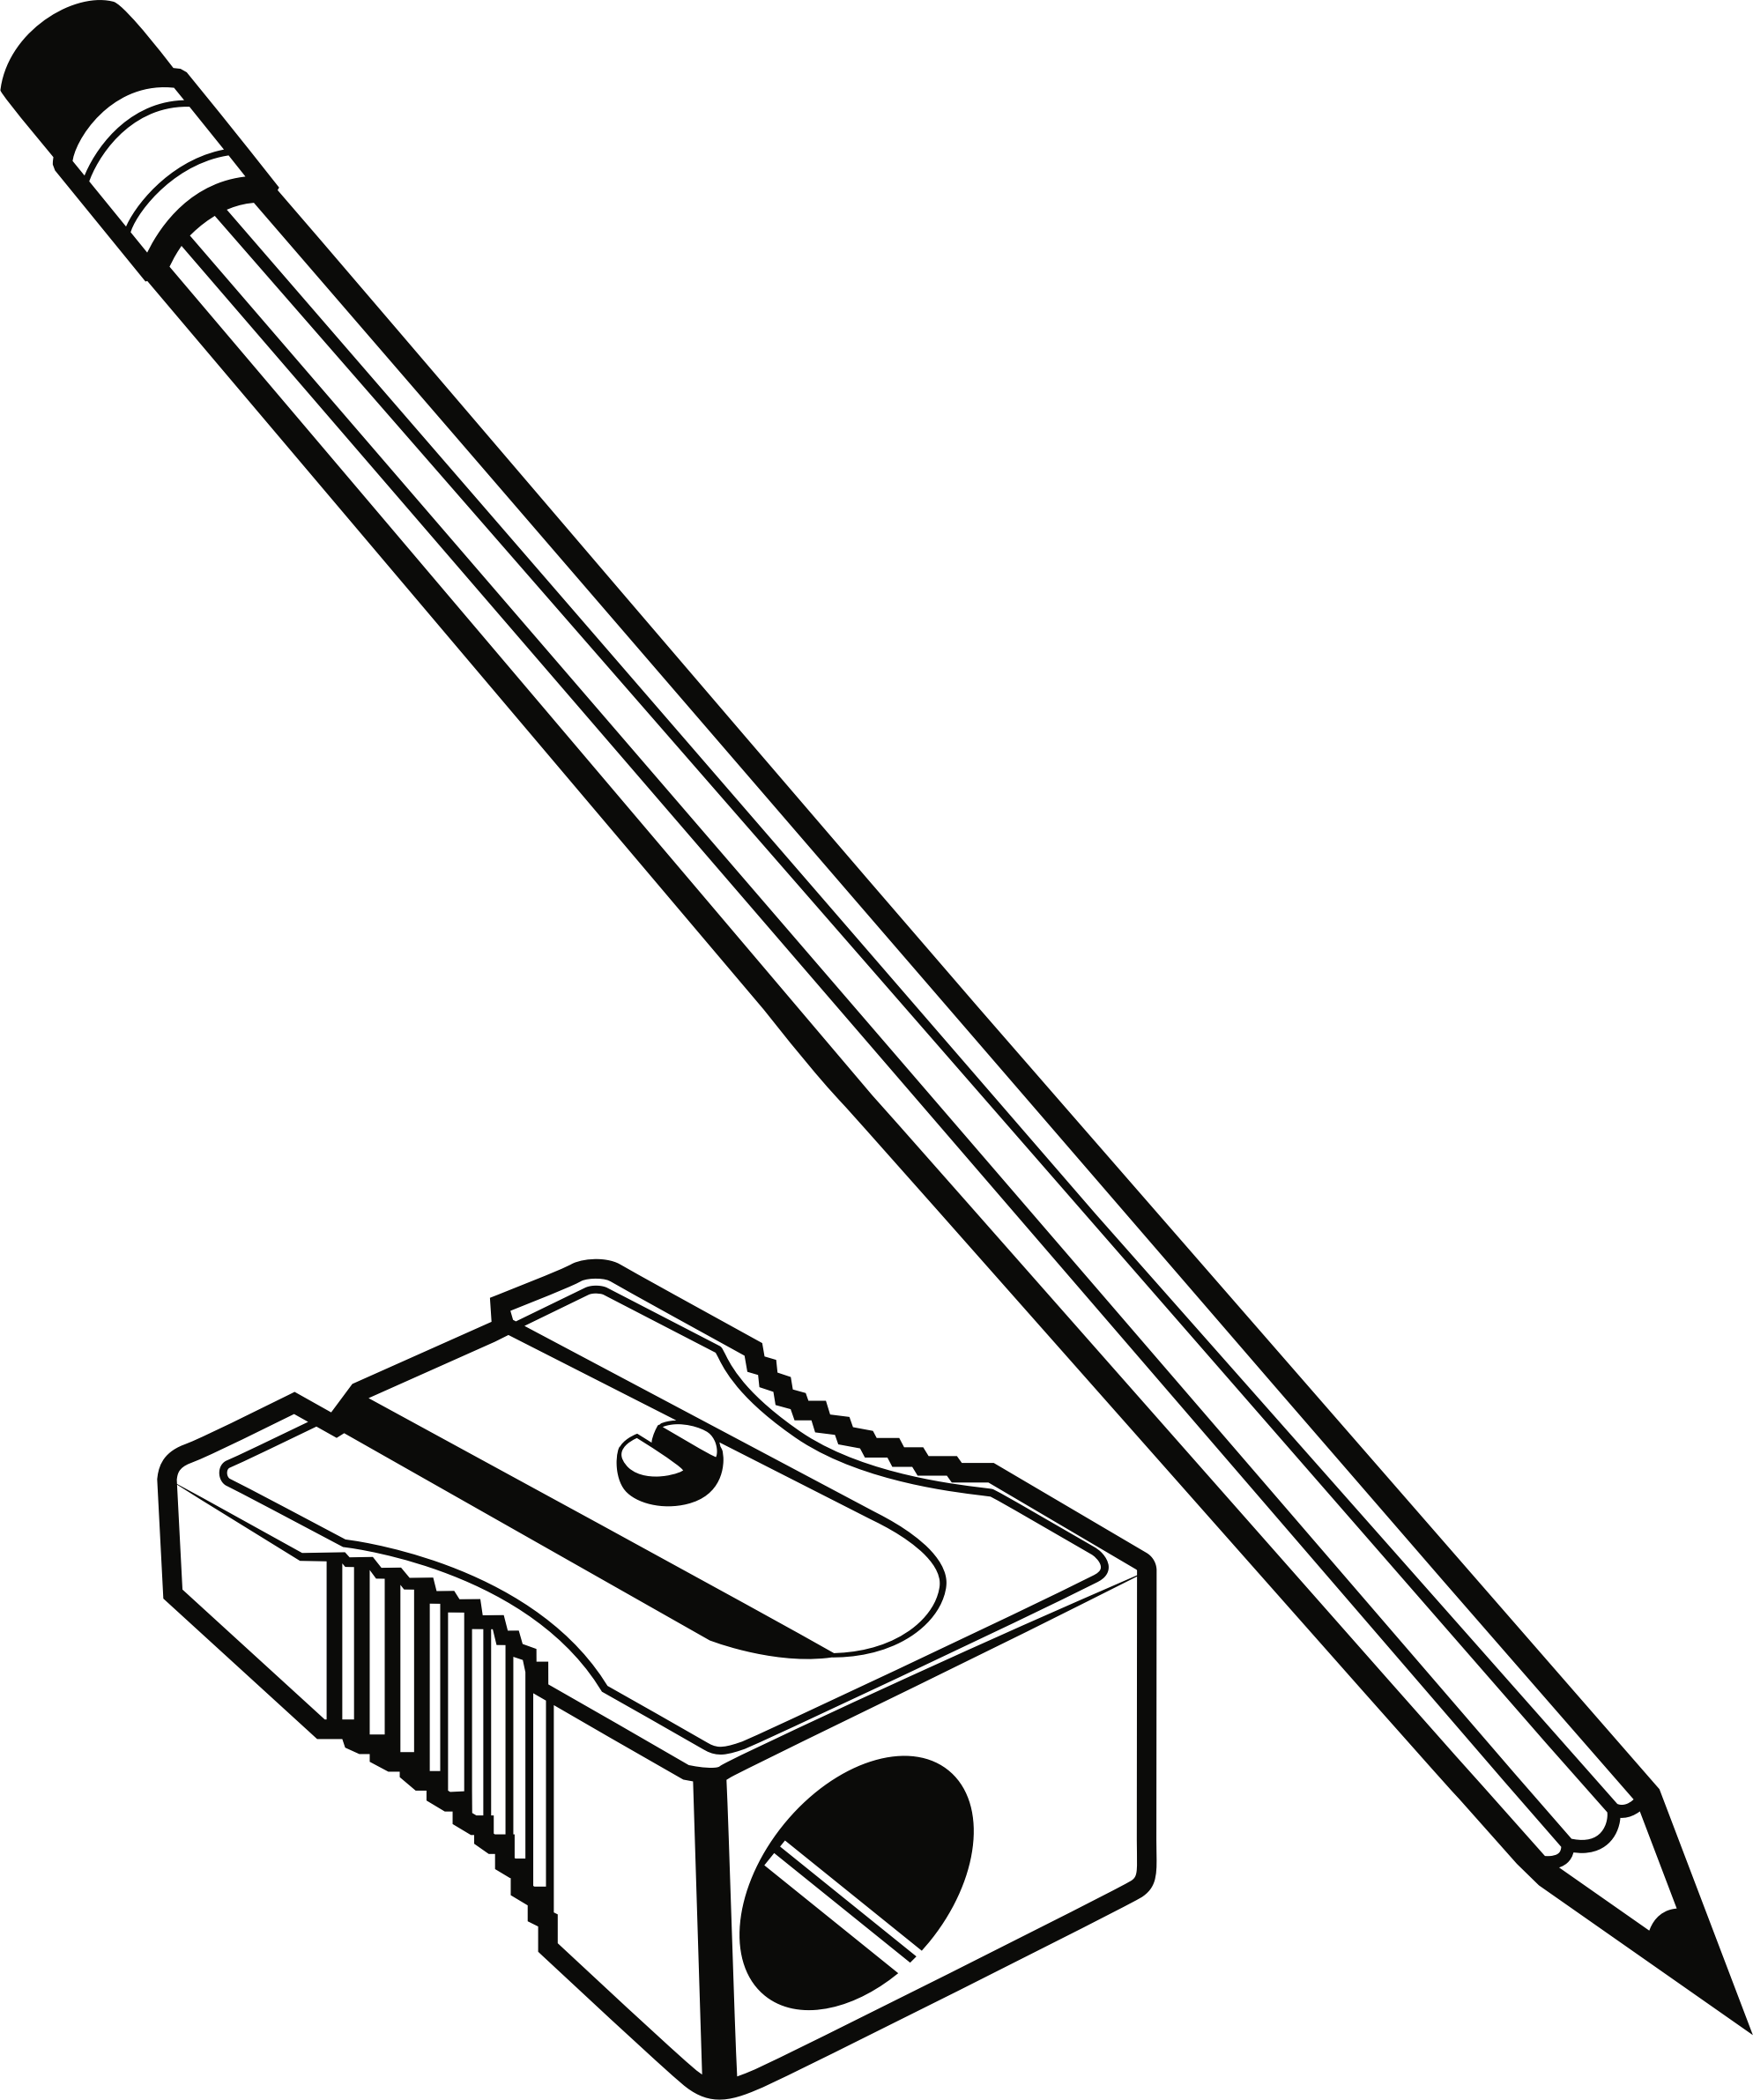 clipart - pencil and sharpener